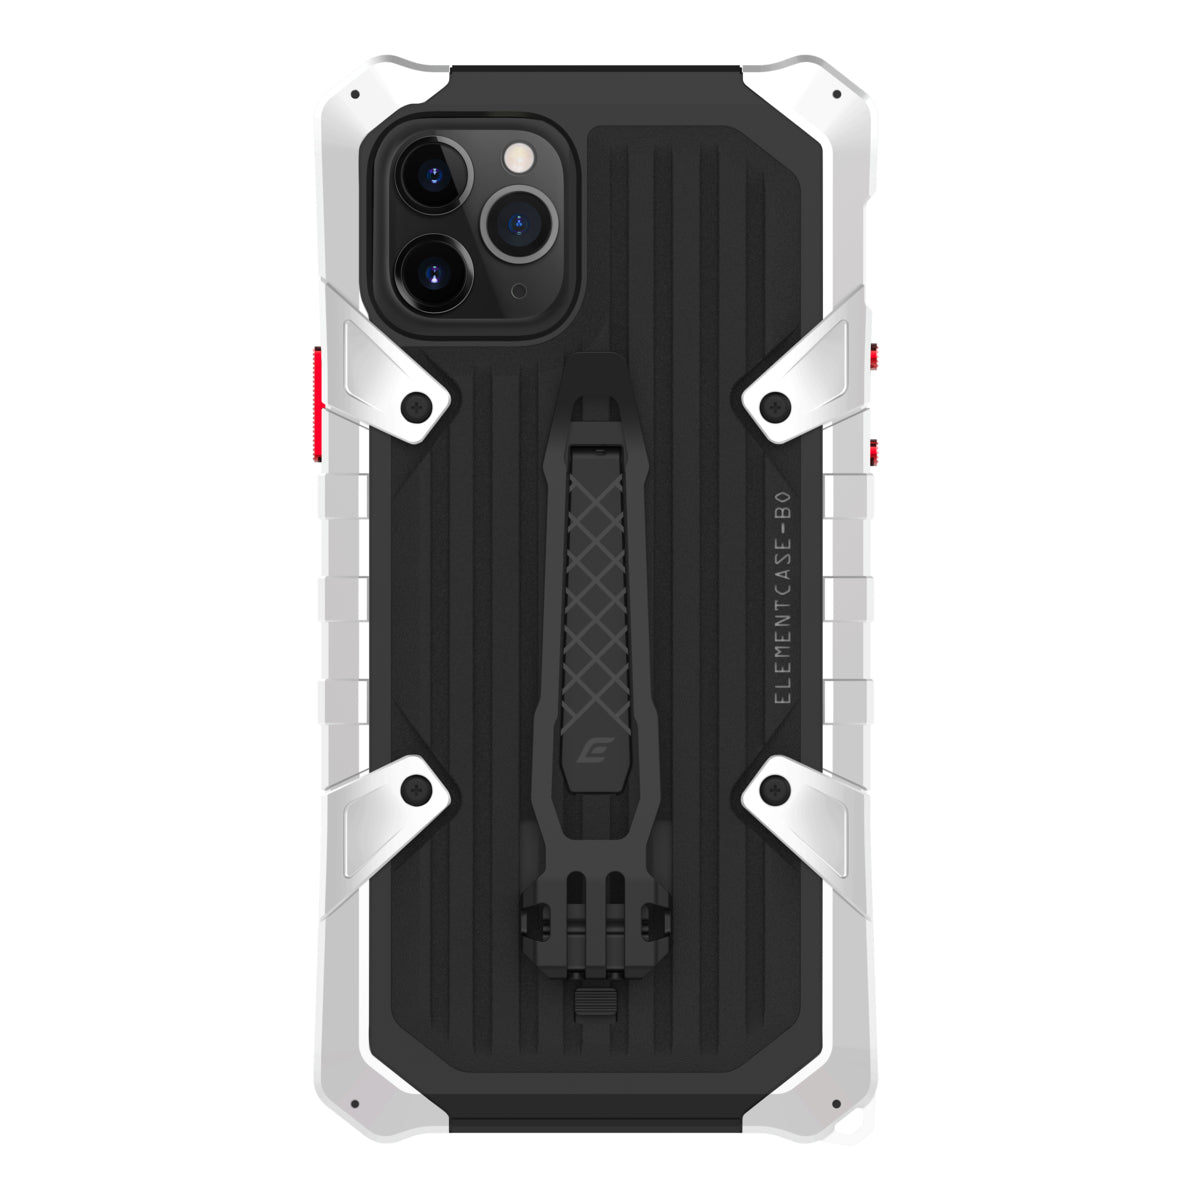 Element Case Black Ops Premium Case For iPhone 11 Pro Max - Silver